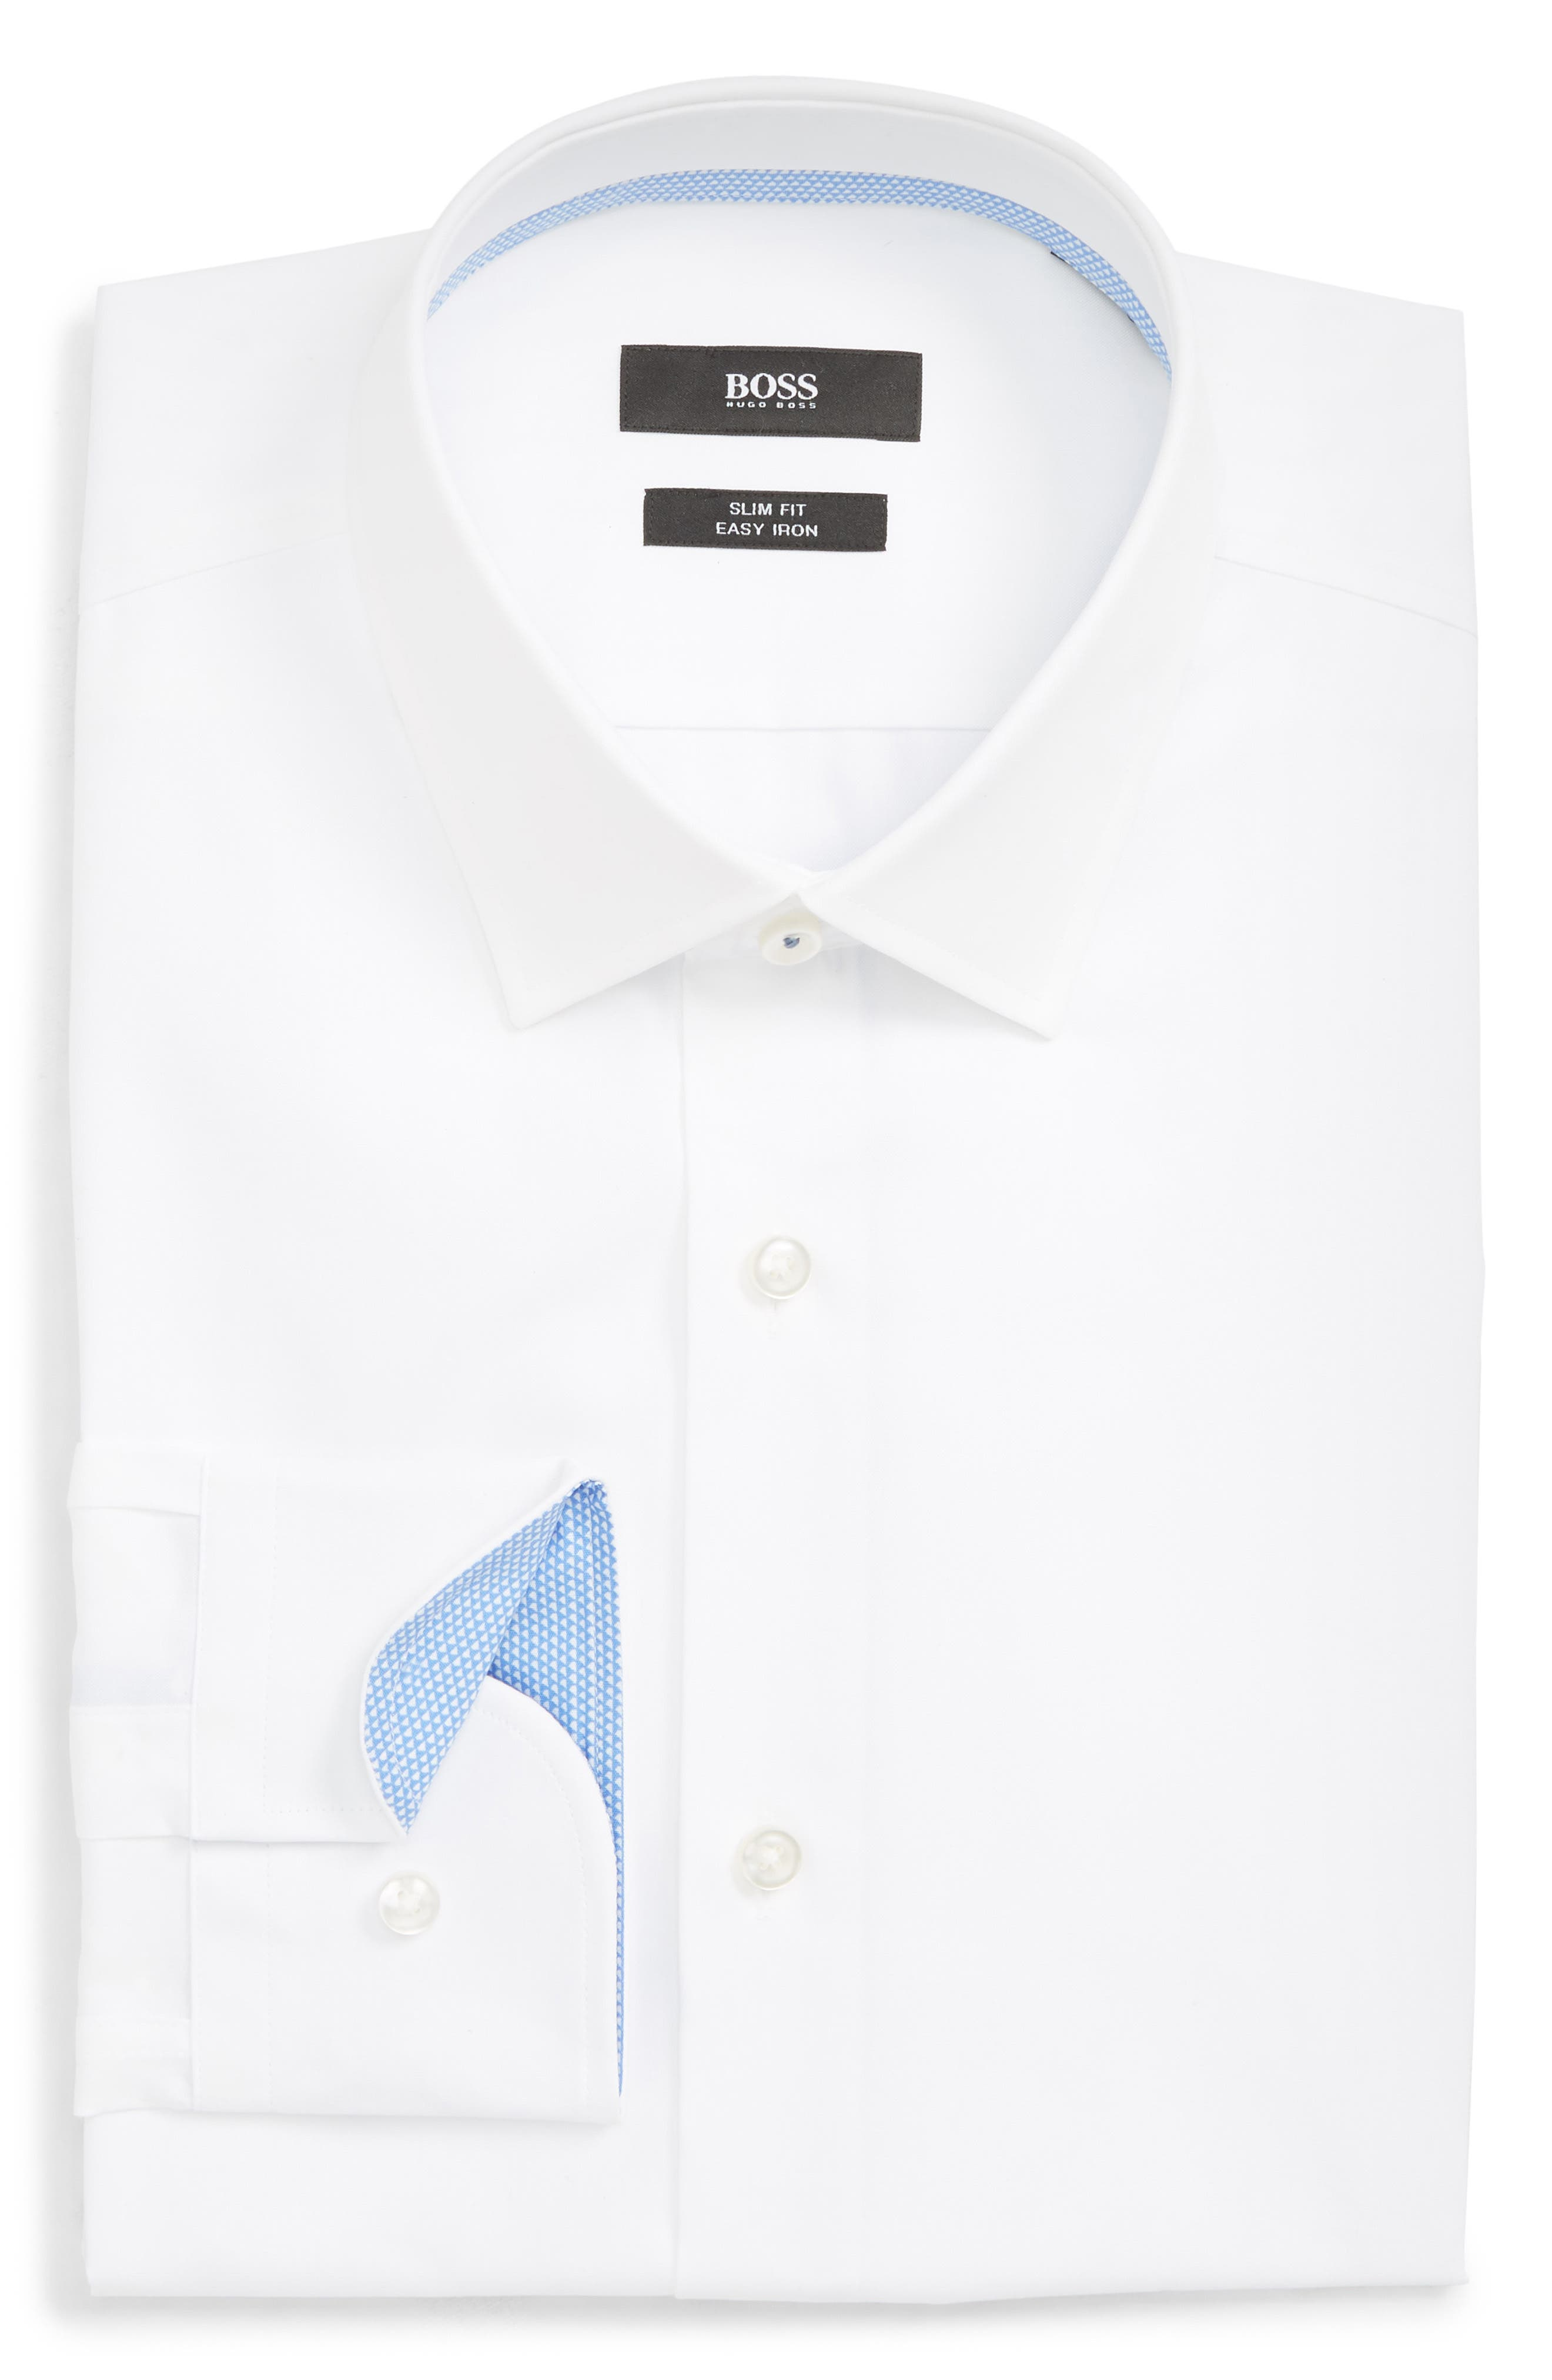 BOSS Jenno Slim Fit Easy Iron Solid Dress Shirt in White